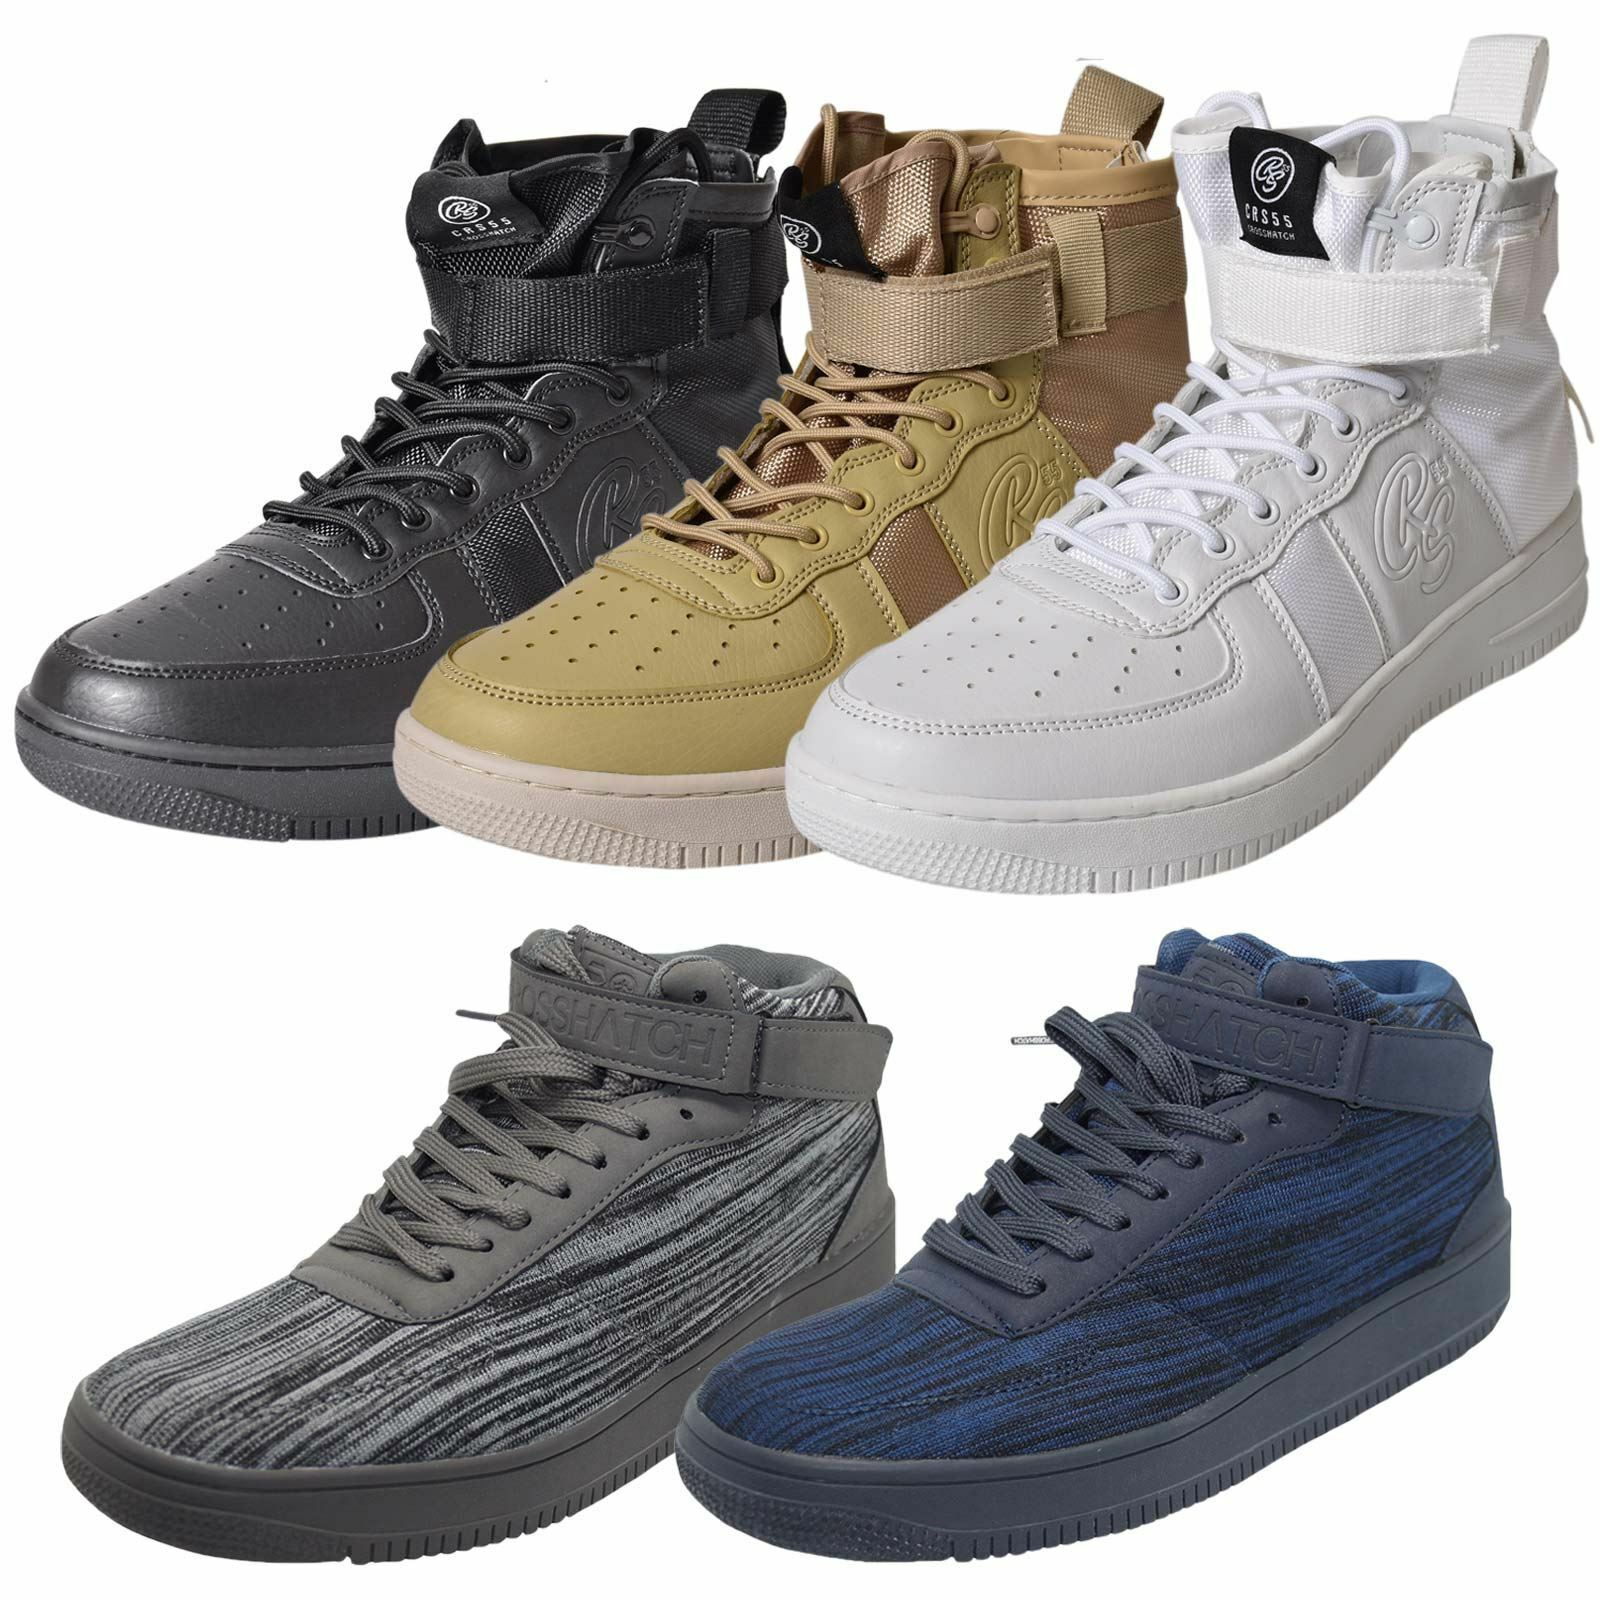 Mens New Crosshatch Fleetfoot Trainers Hi Top Ankle Boots Lace up Comfy shoes